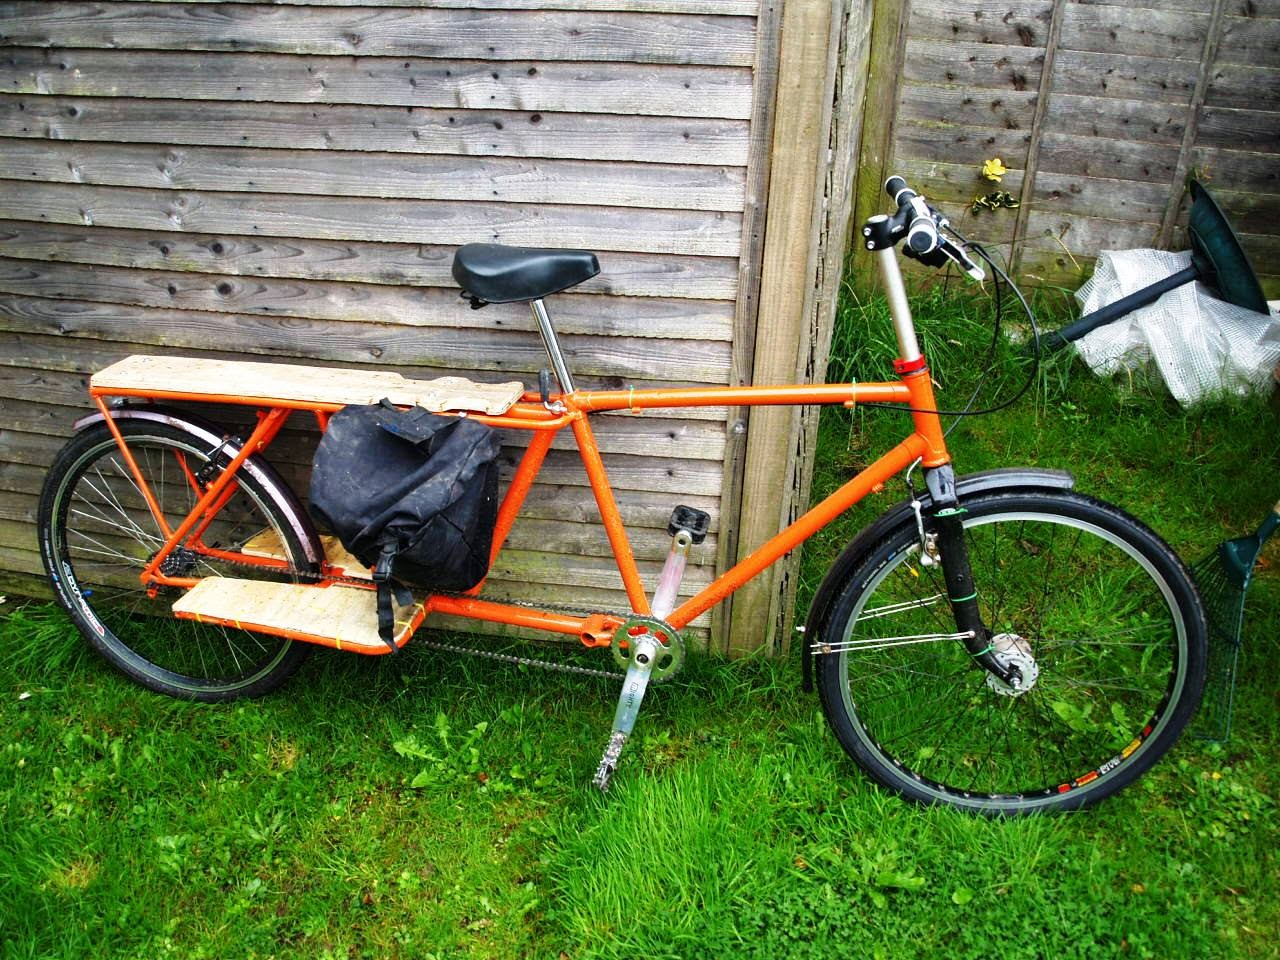 dorkythorpy: DIY Longtail Cargo Bike - Chapter 1